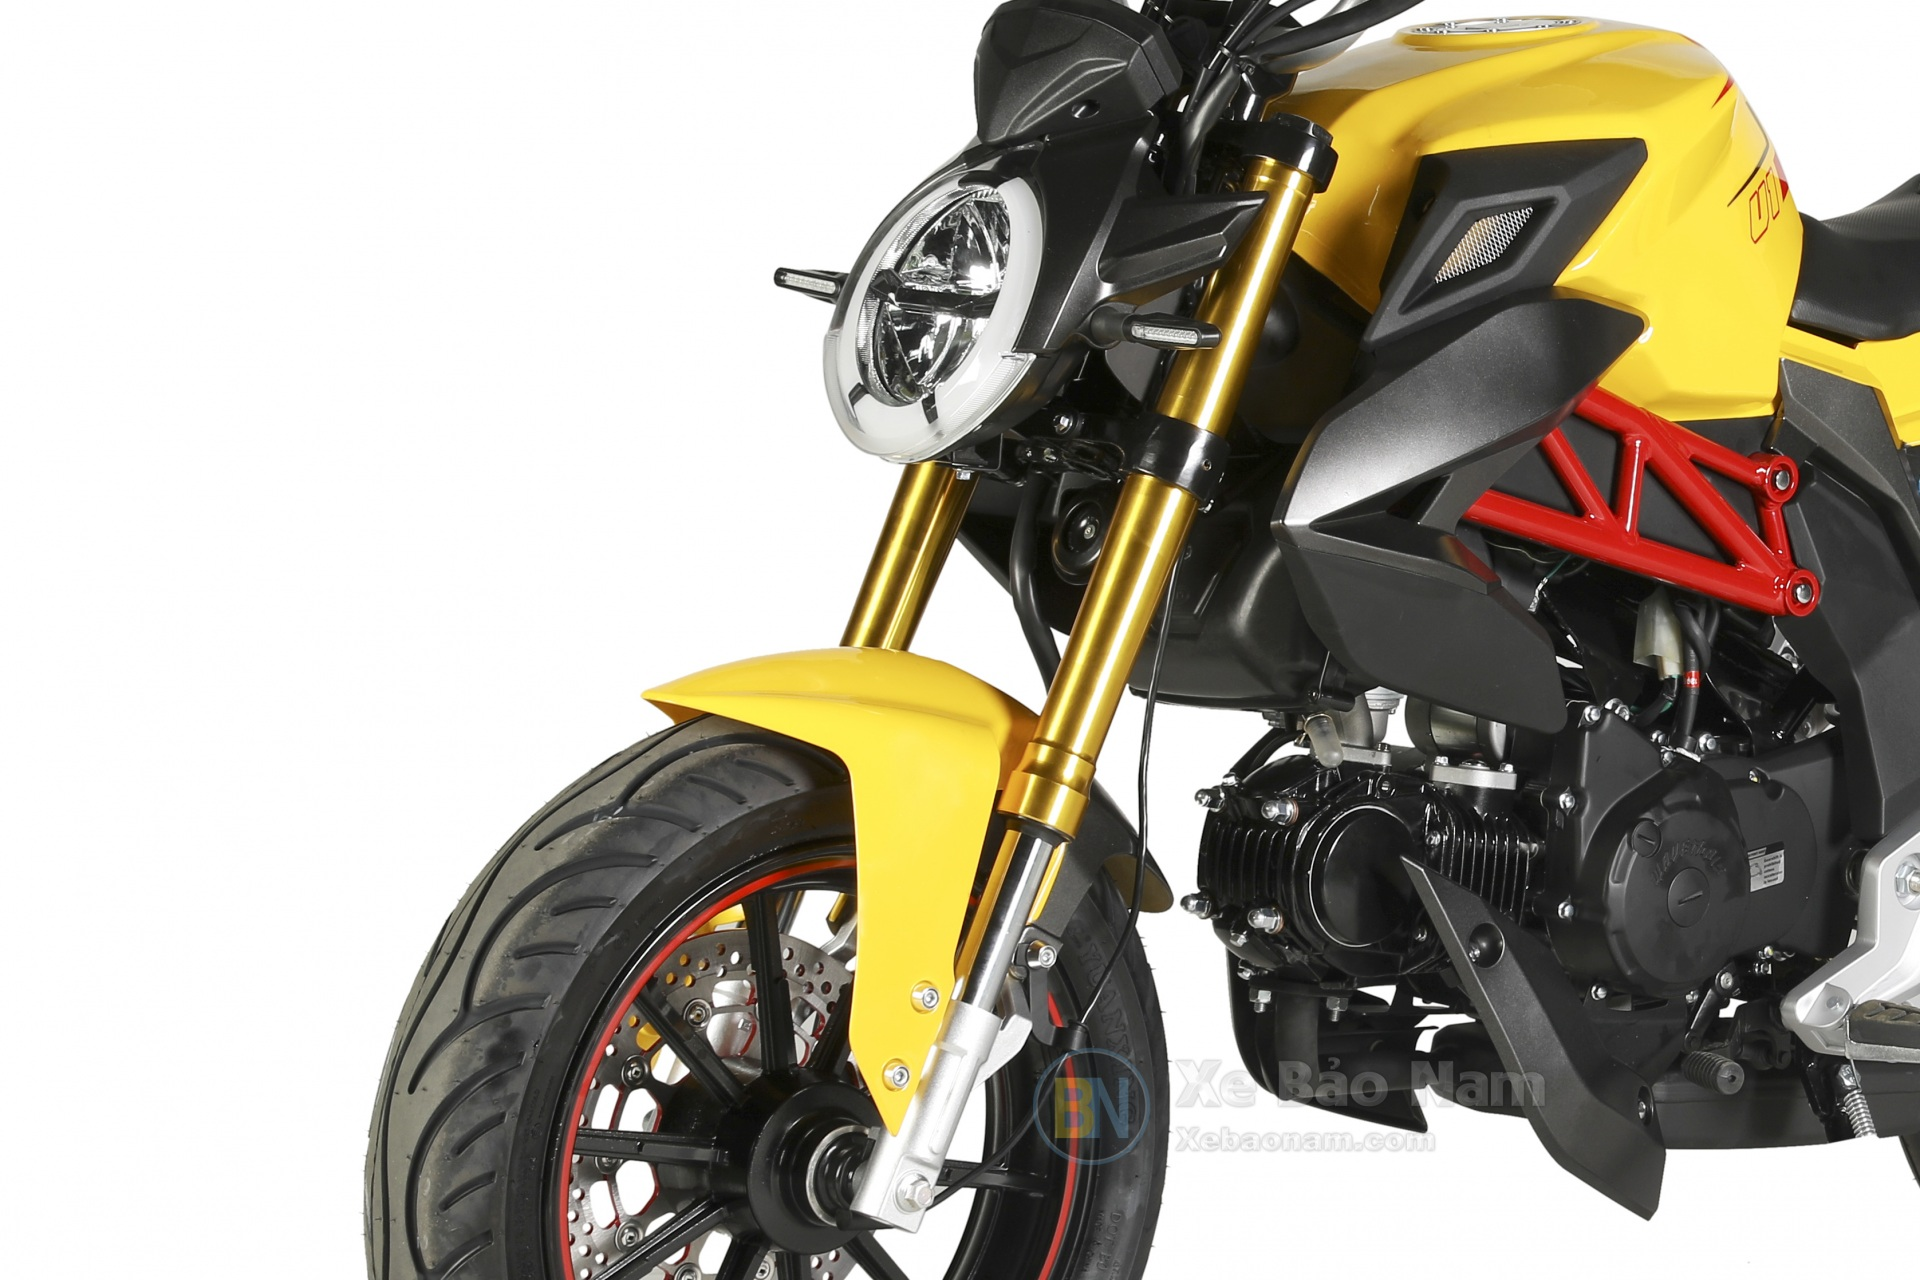 xe-may-mv-agusta-mini-110-new-xebaonam-6